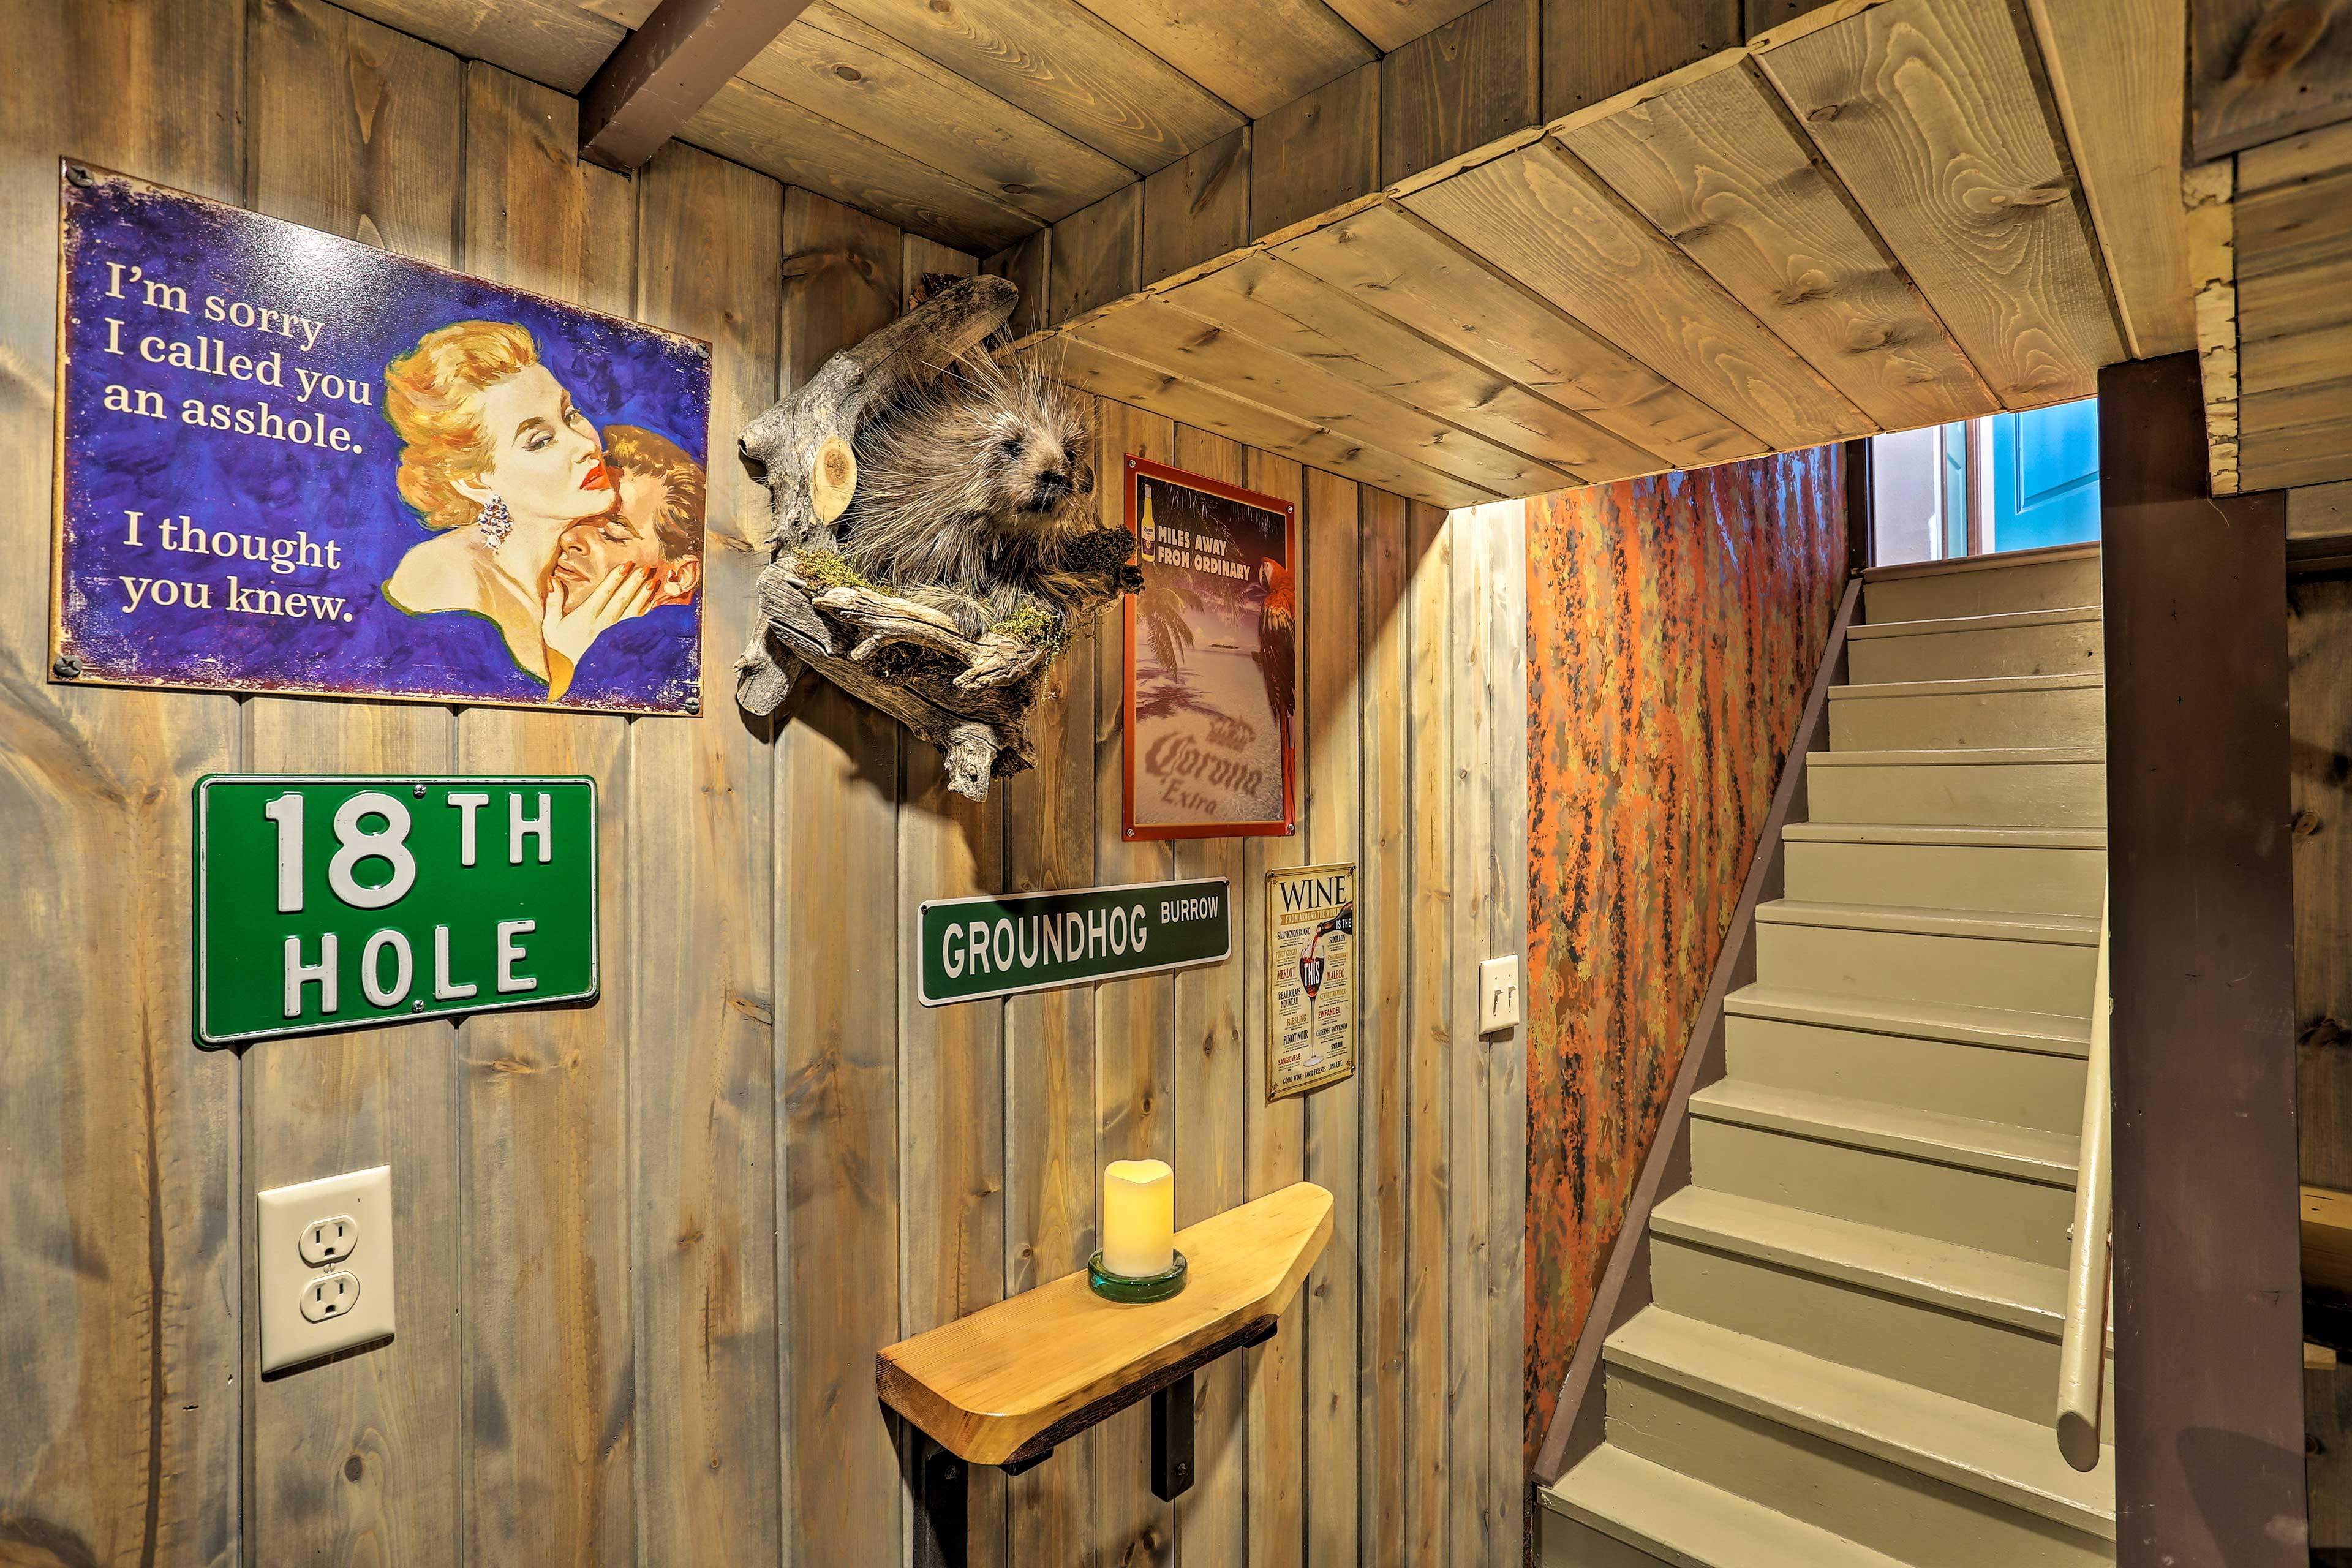 Make your way downstairs to the 'Groundhog Burrow.'